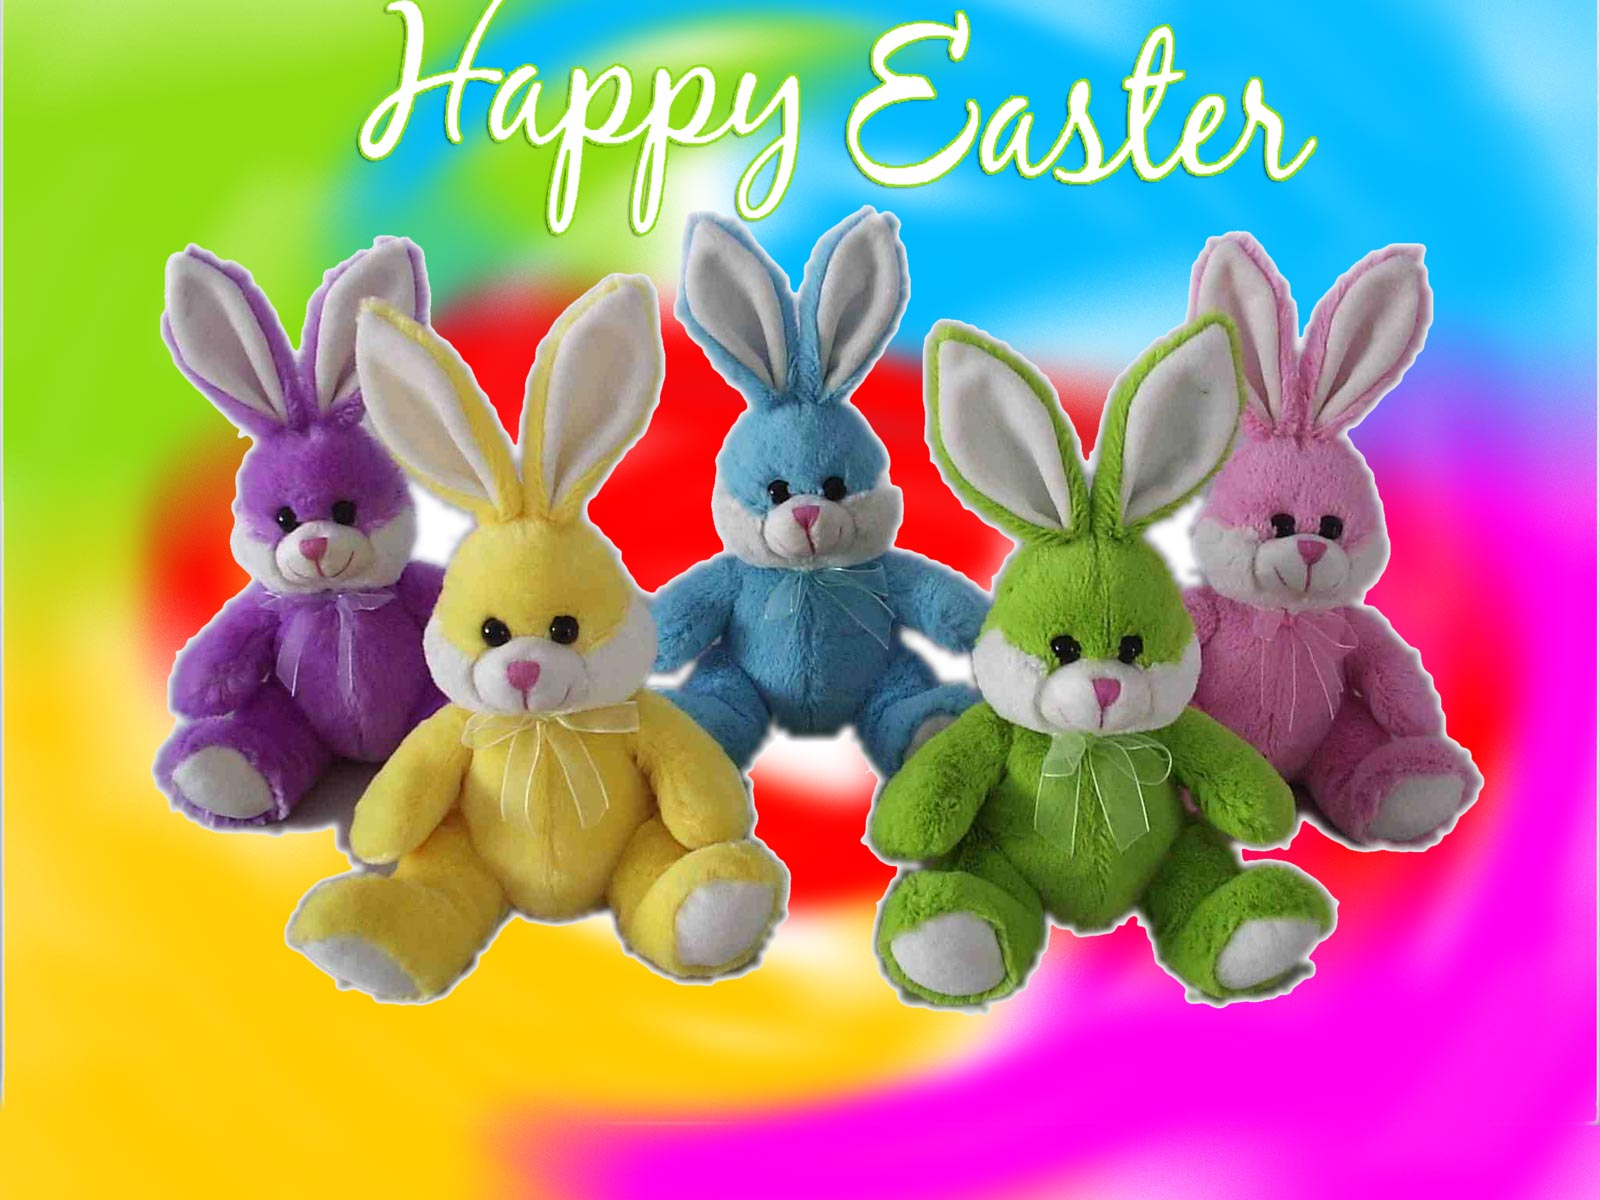 Colorful Easter Bunnies Greeting Card Travel Around The World